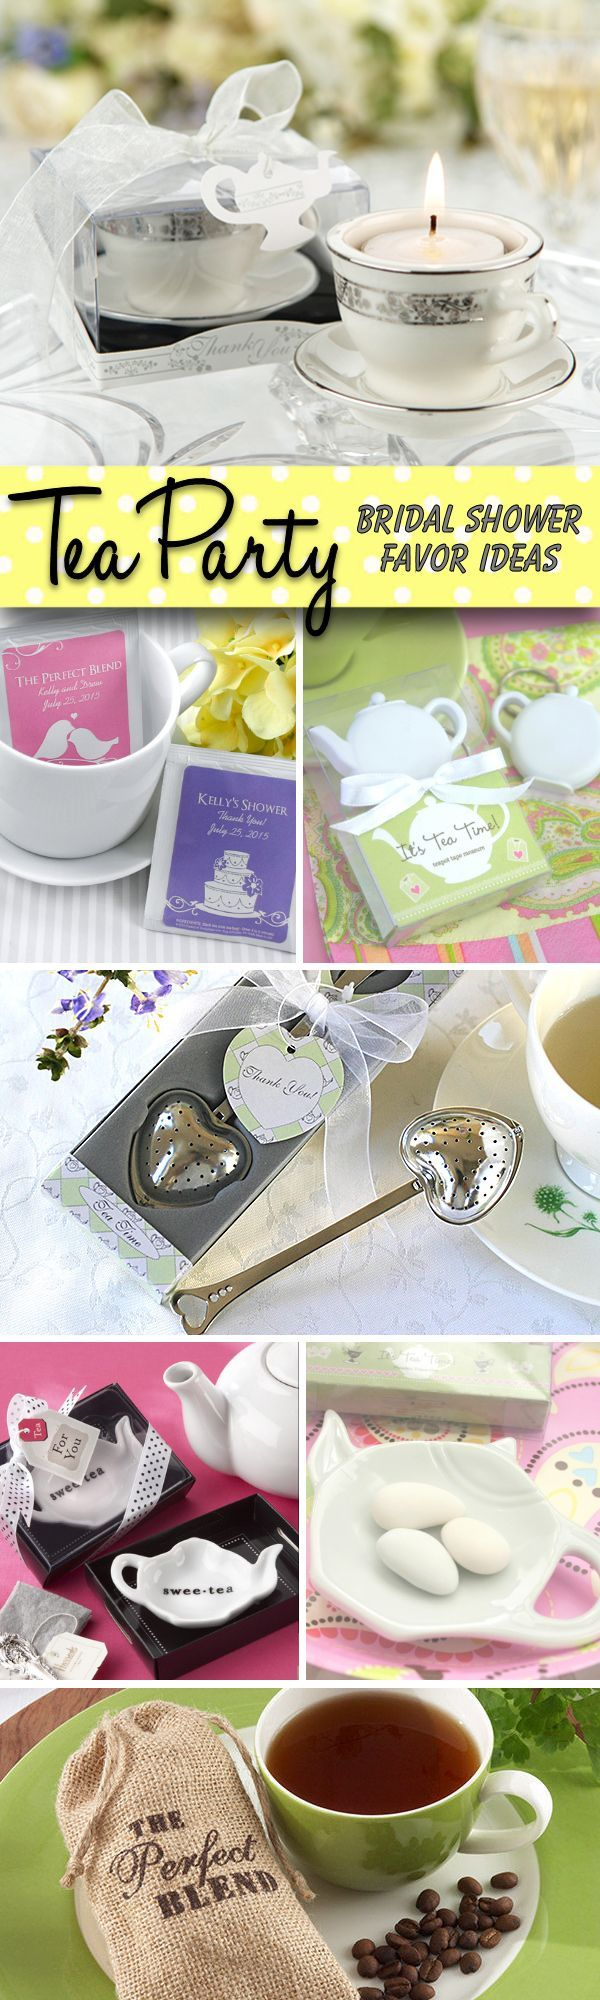 25 Fun Bridal Shower Favor Ideas for Tea Parties